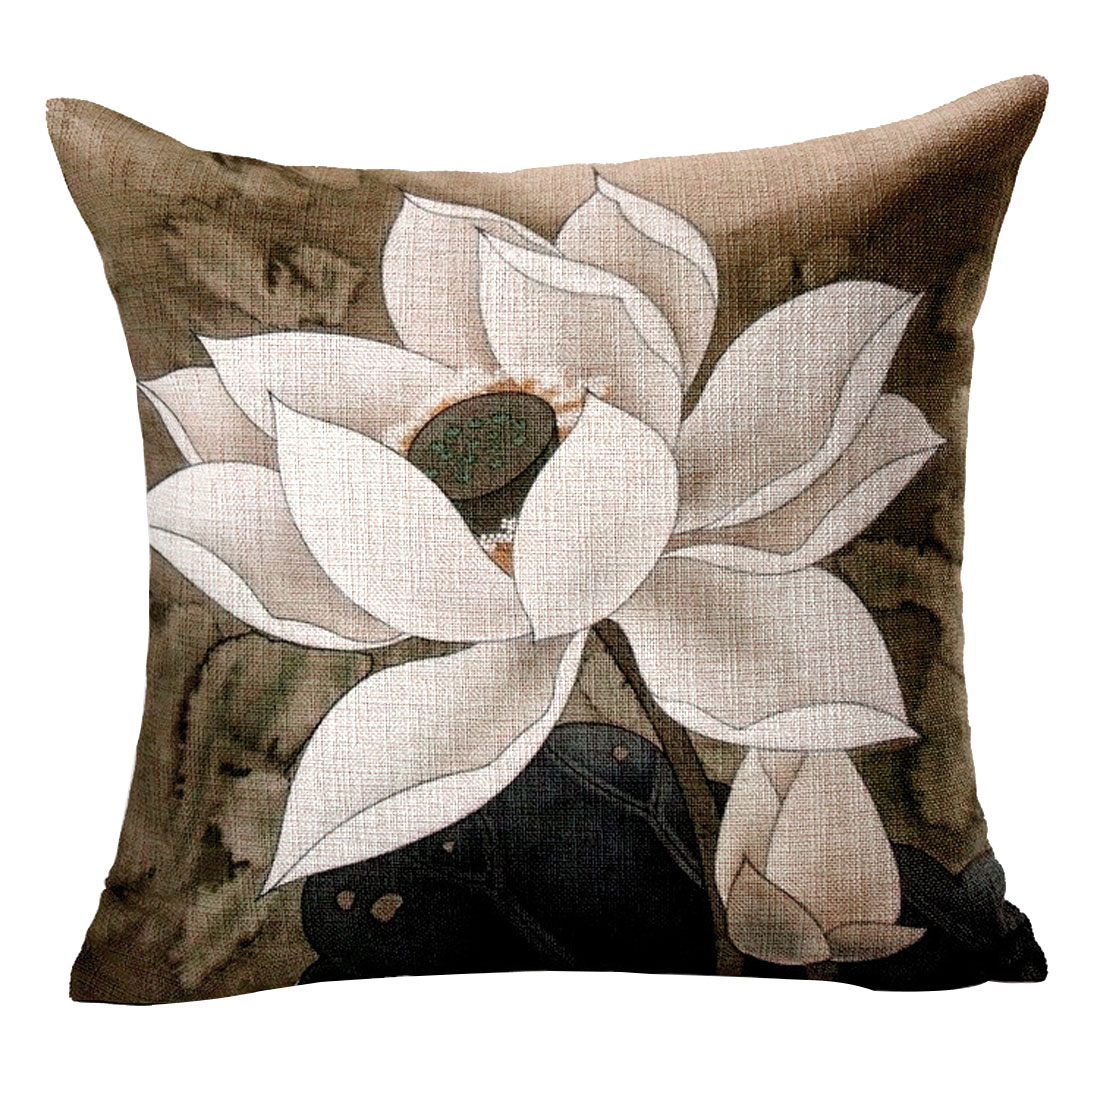 Household Sofa Cotton Linen Lotus Pattern Chinoiserie Waist Back Cushion Pillow Cover